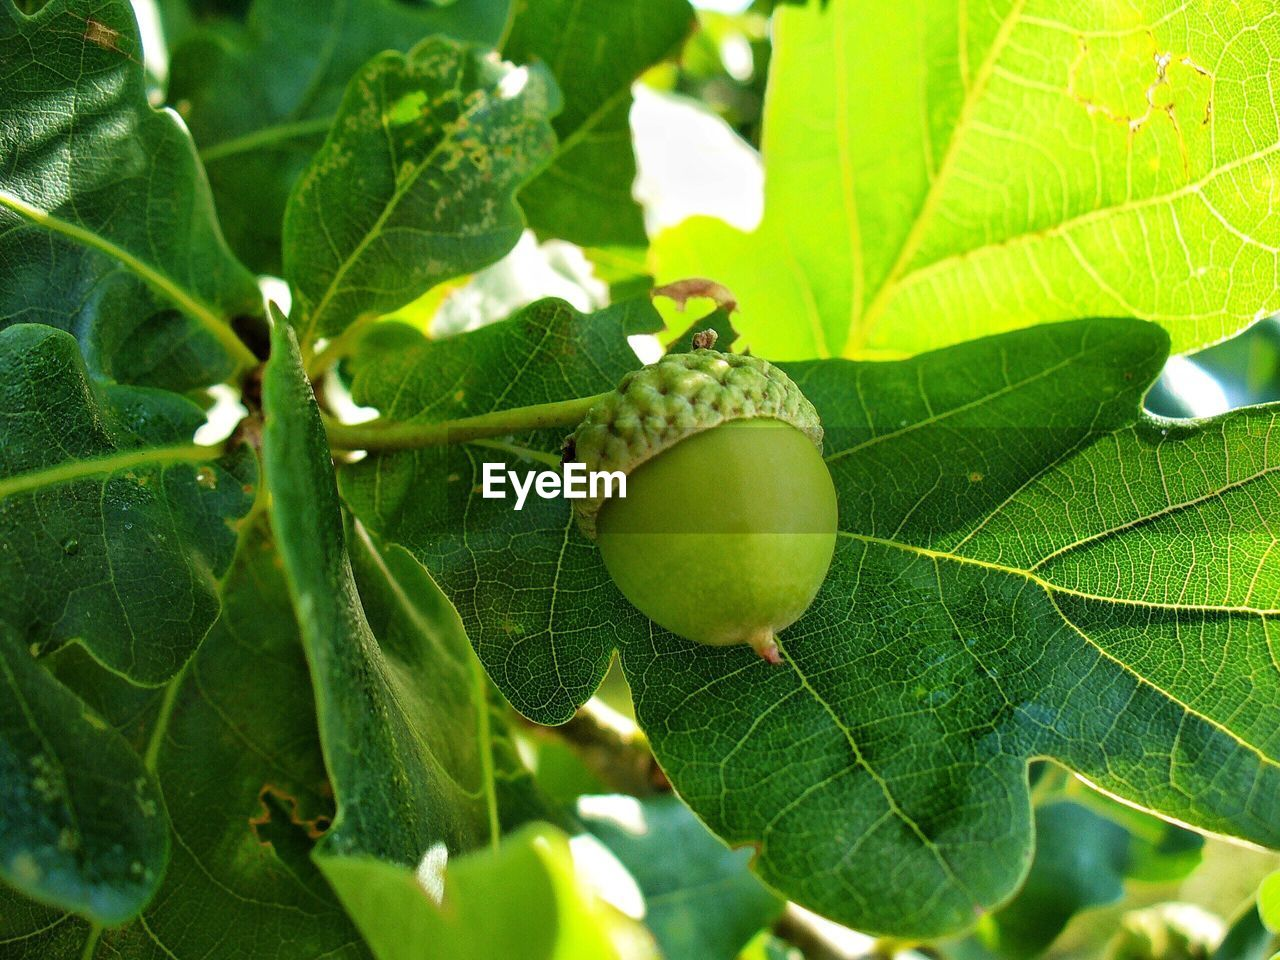 leaf, green color, growth, food and drink, nature, close-up, day, no people, plant, freshness, food, fruit, outdoors, beauty in nature, acorn, animal themes